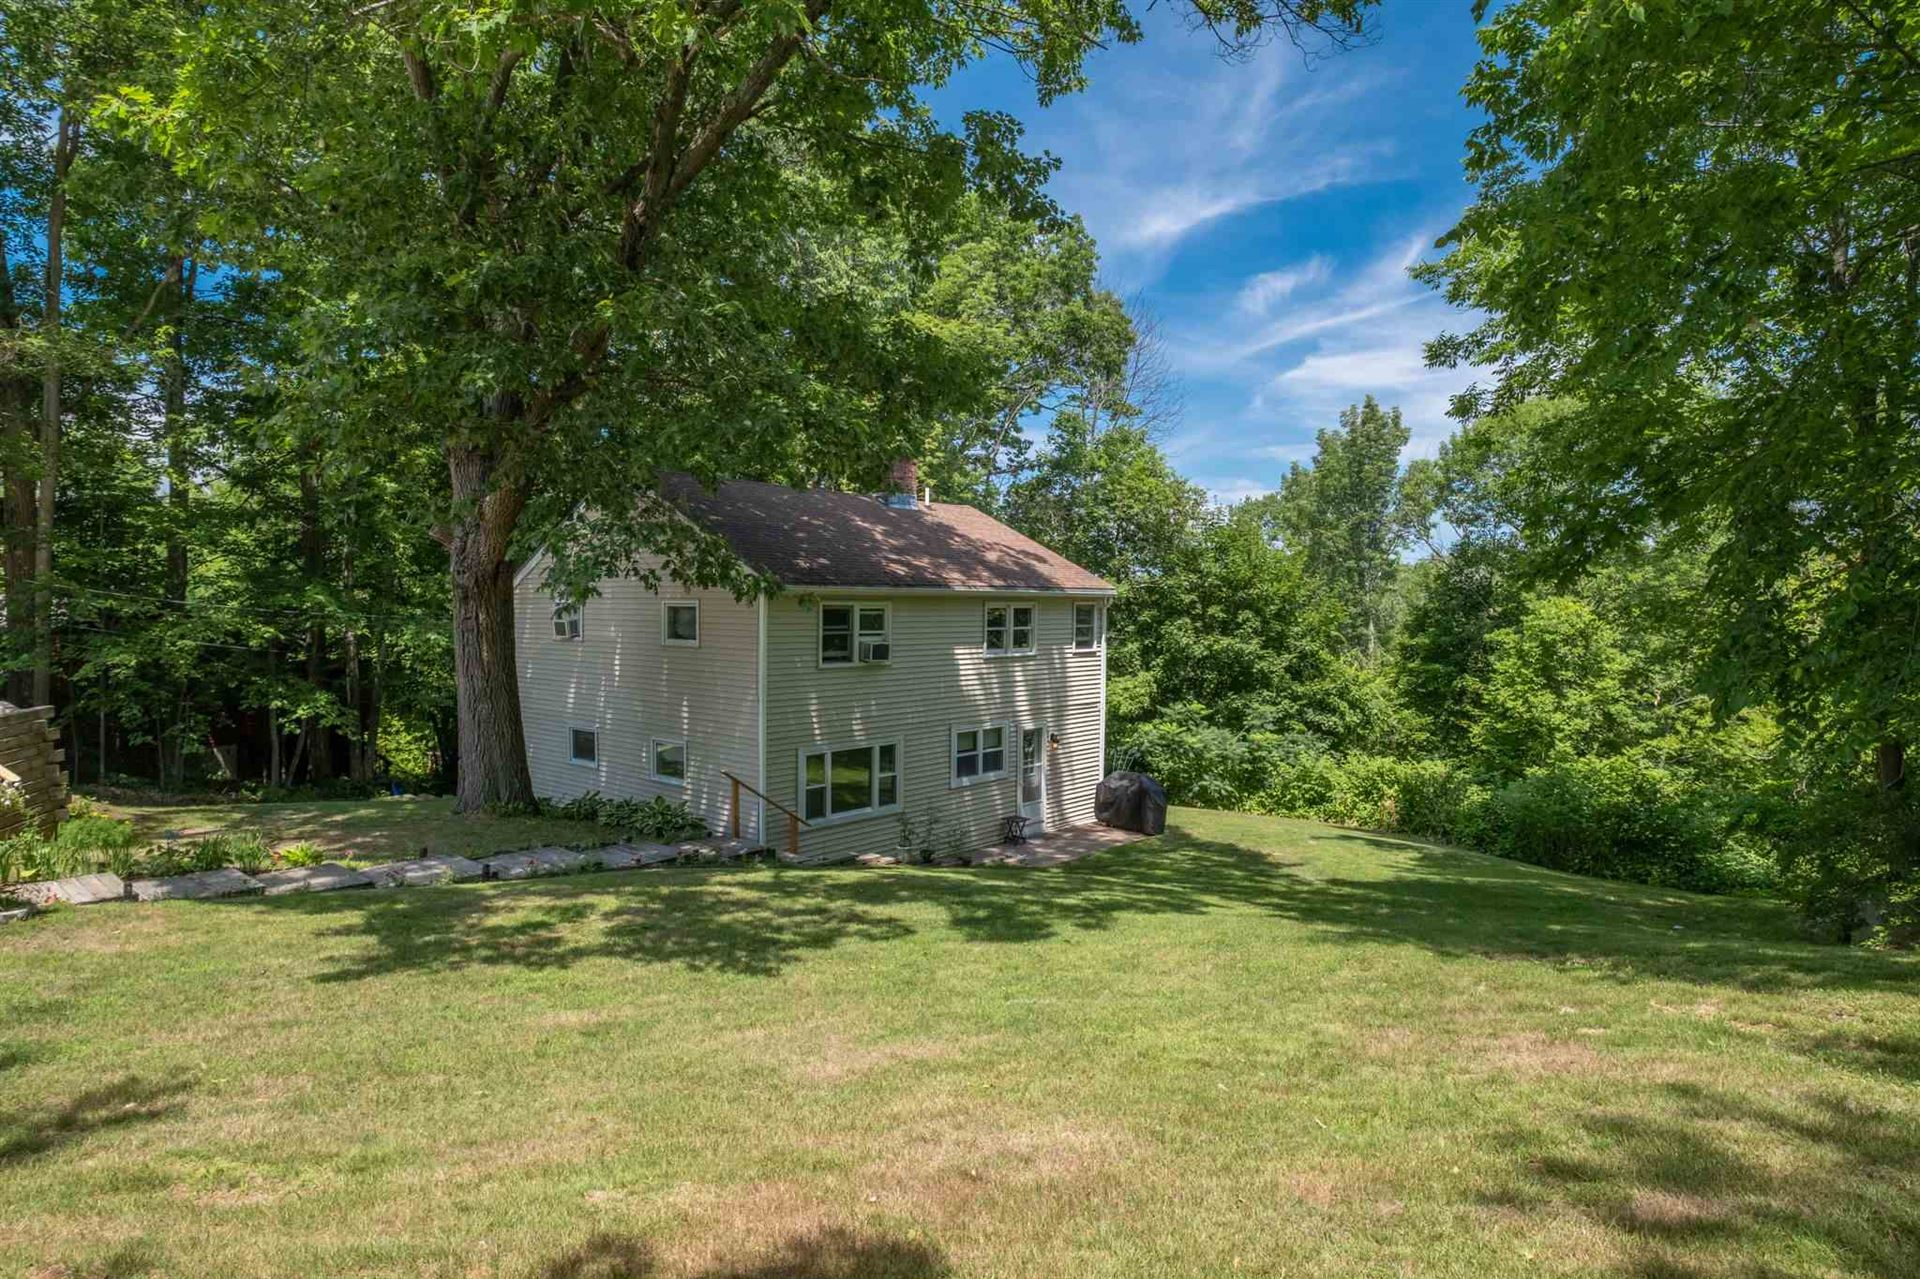 31 Carriage Road, Bow, NH 03304 - MLS#: 4815899